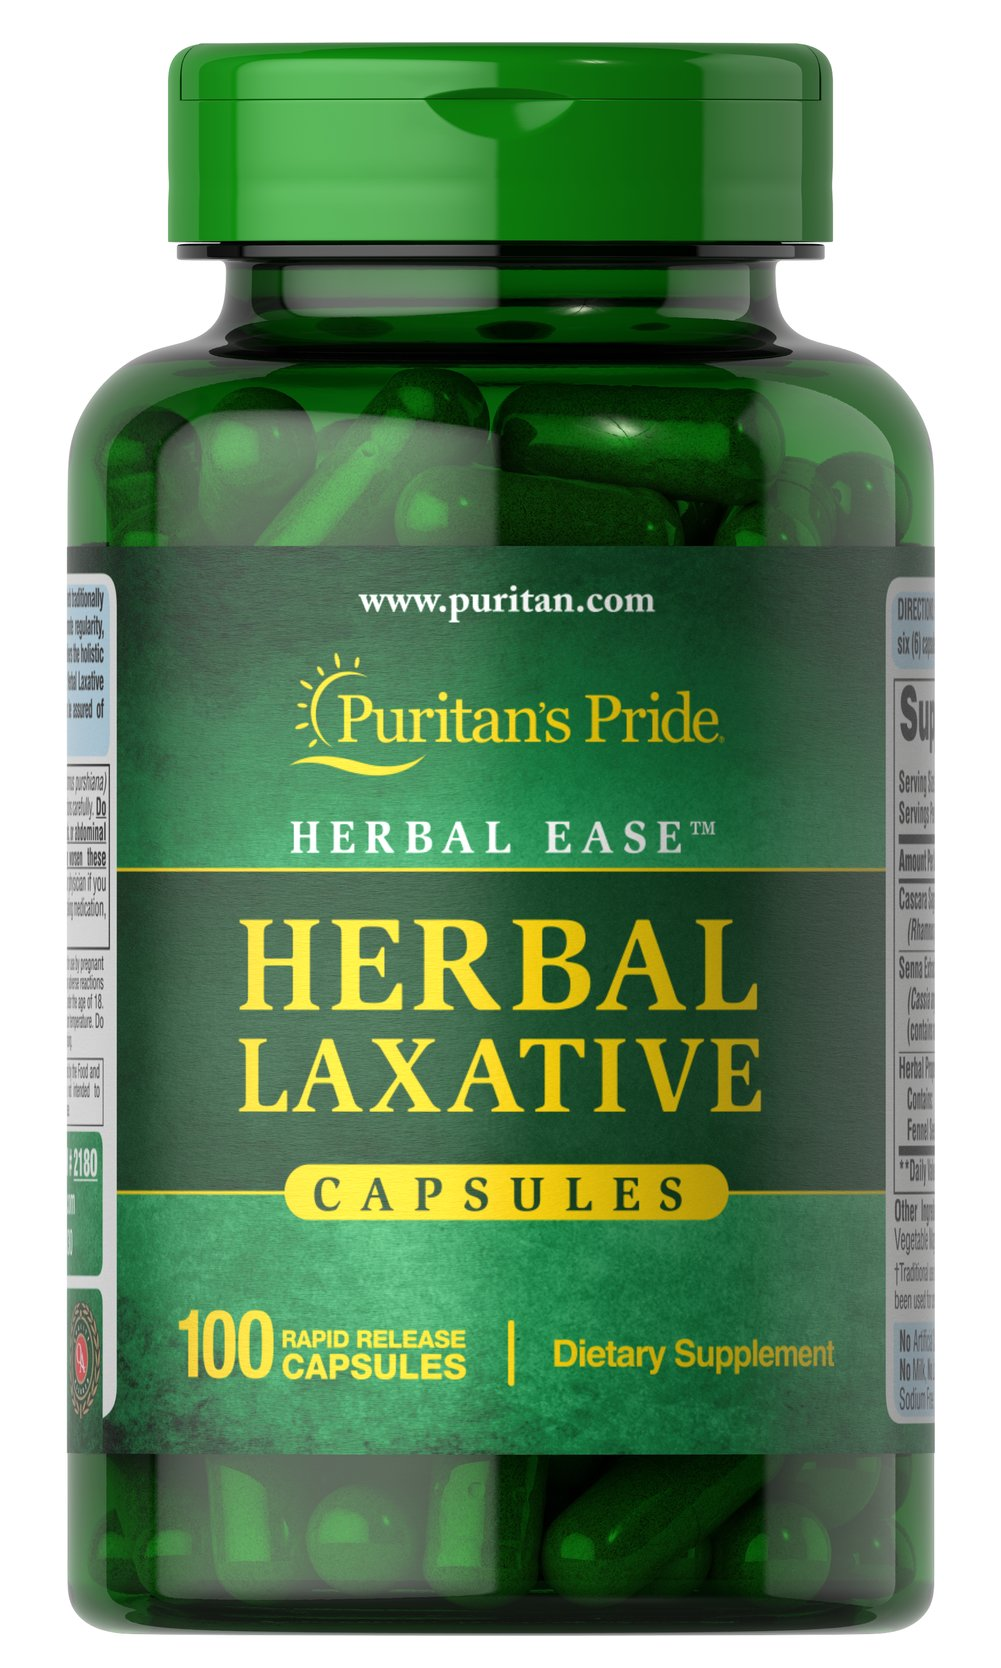 Herbal Laxative <p>Herbal Laxative Tablets is based on traditional use for the relief of occasional constipation.** Our formula brings together holistic properties to help promote regularity.** Herbal Laxative Tablets contain no harsh synthetics, so you can be assured of gentle, yet efficient, cleansing.**</p><p></p><p>Also available in Tablets. See items #30329, 30330 and 30331.</p> 100 Capsules  $11.99